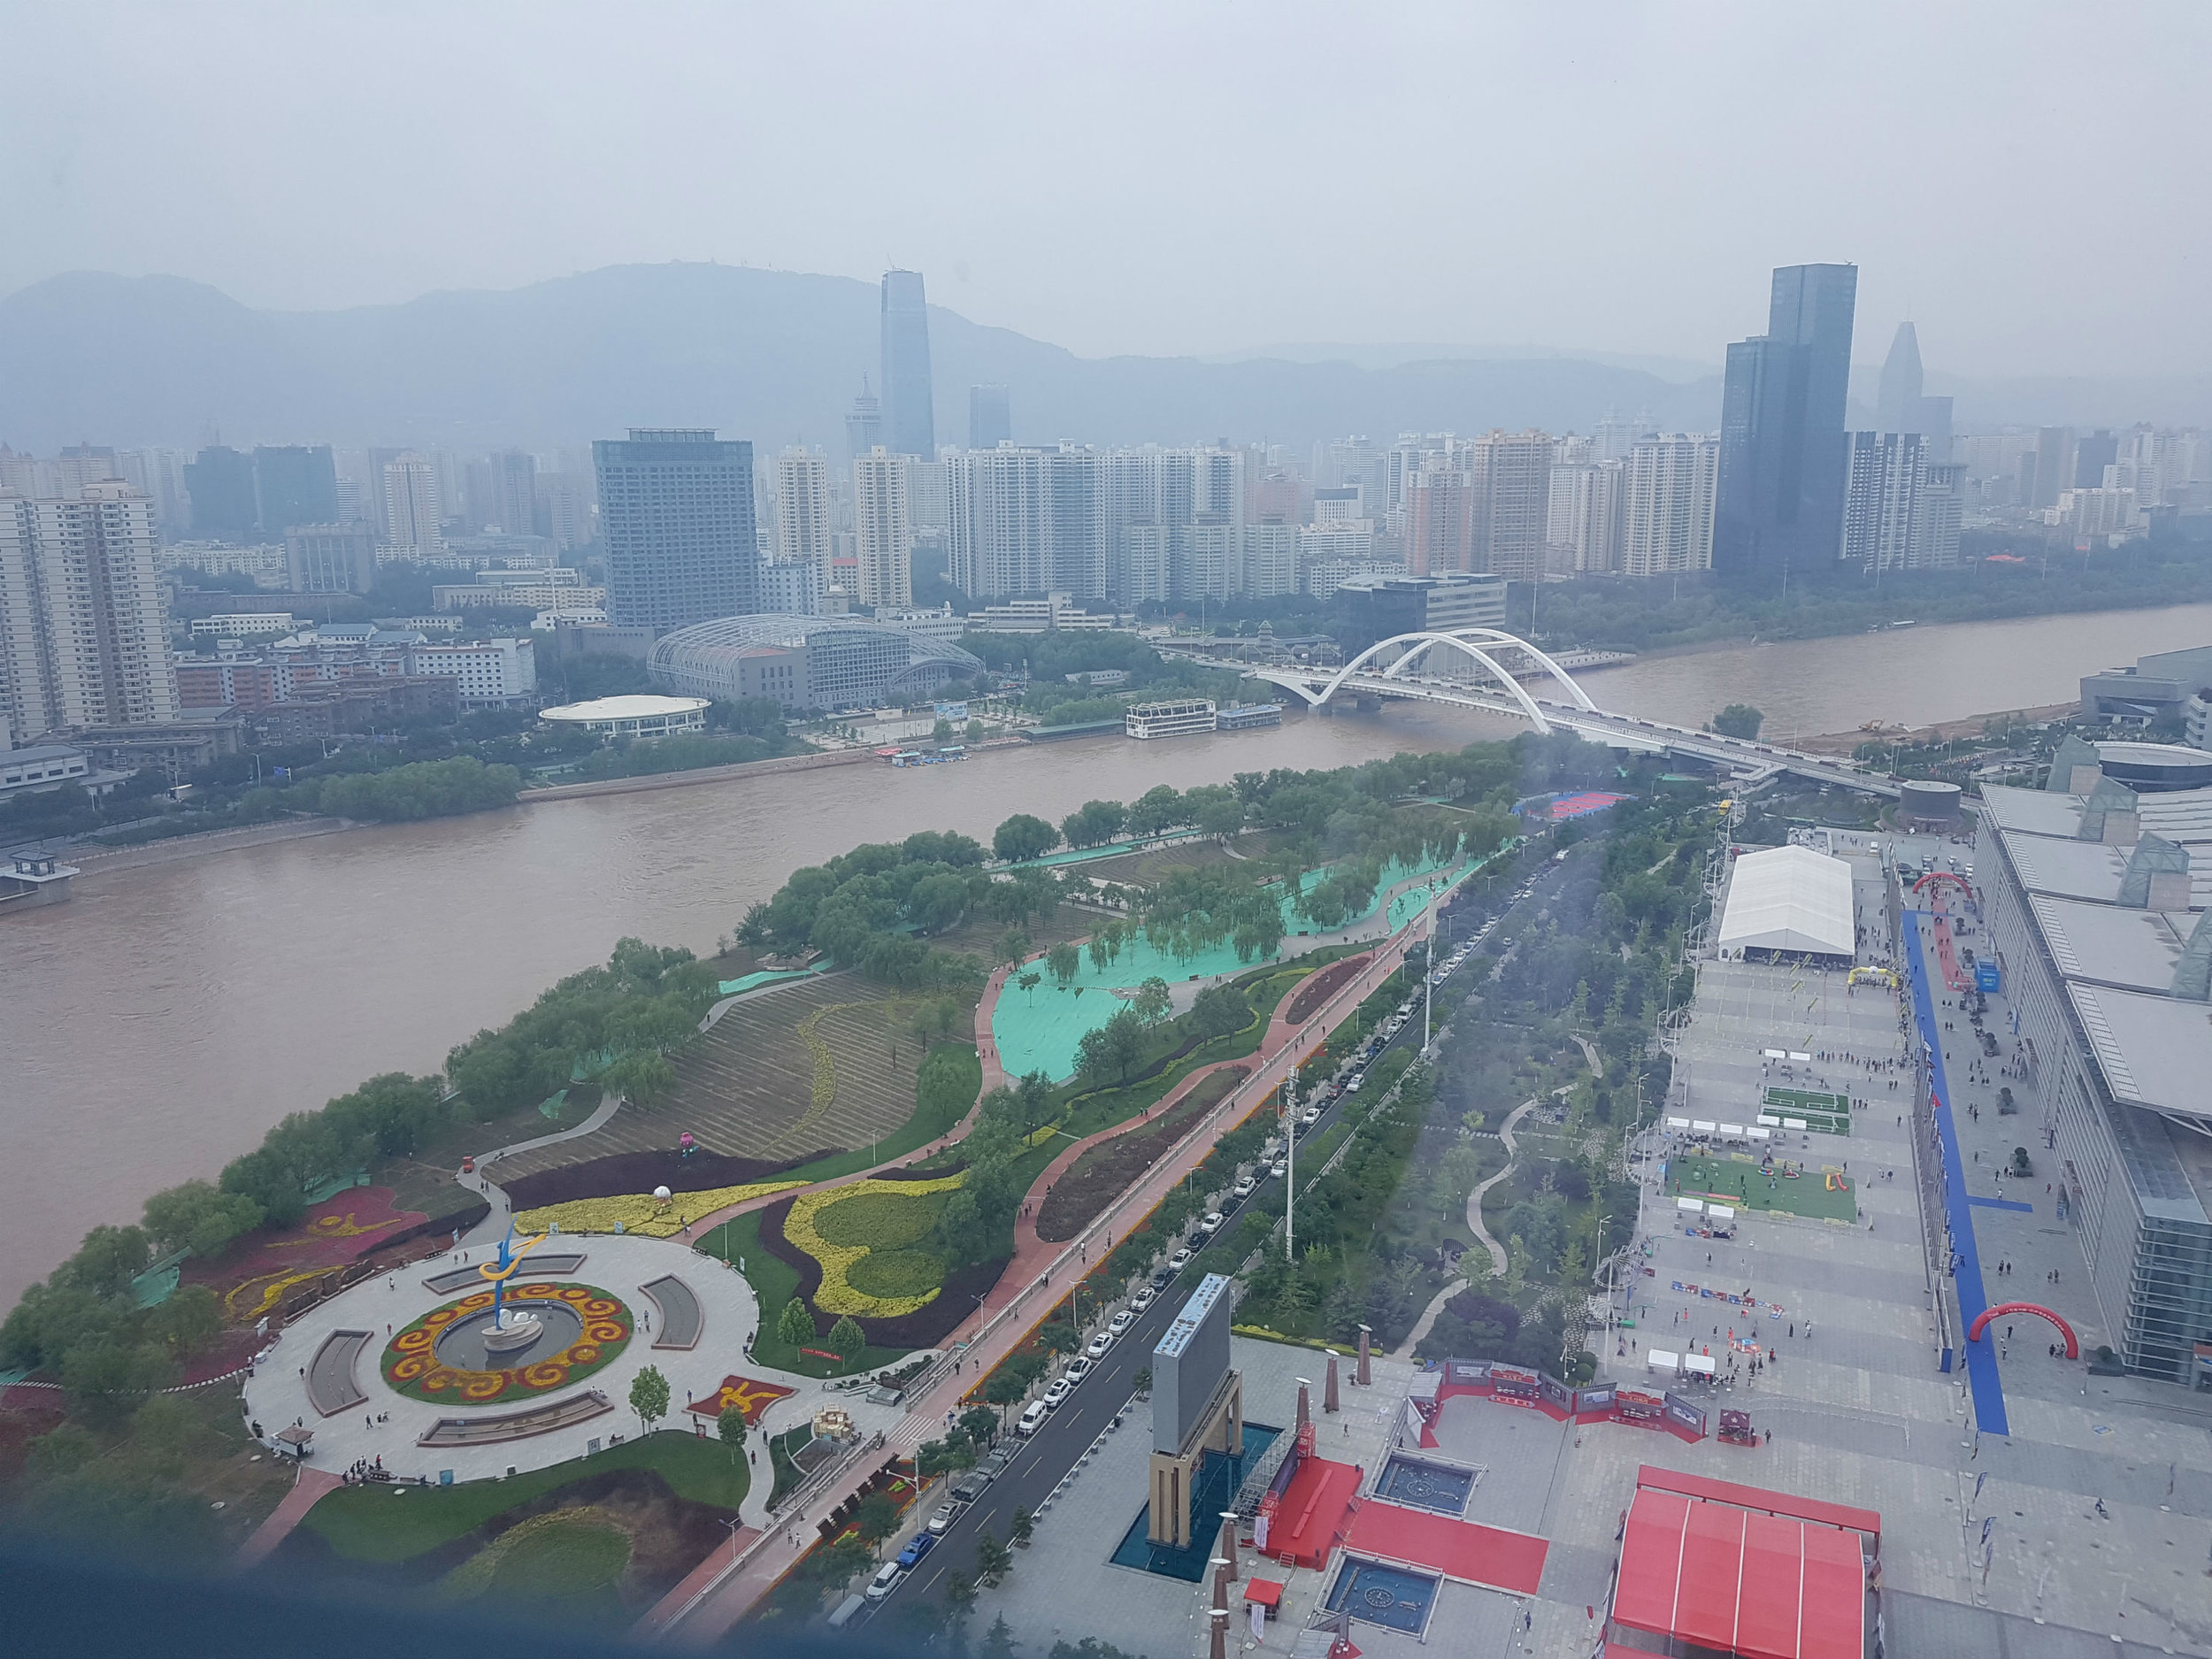 Birds-eye view on Yellow River from our hotel room